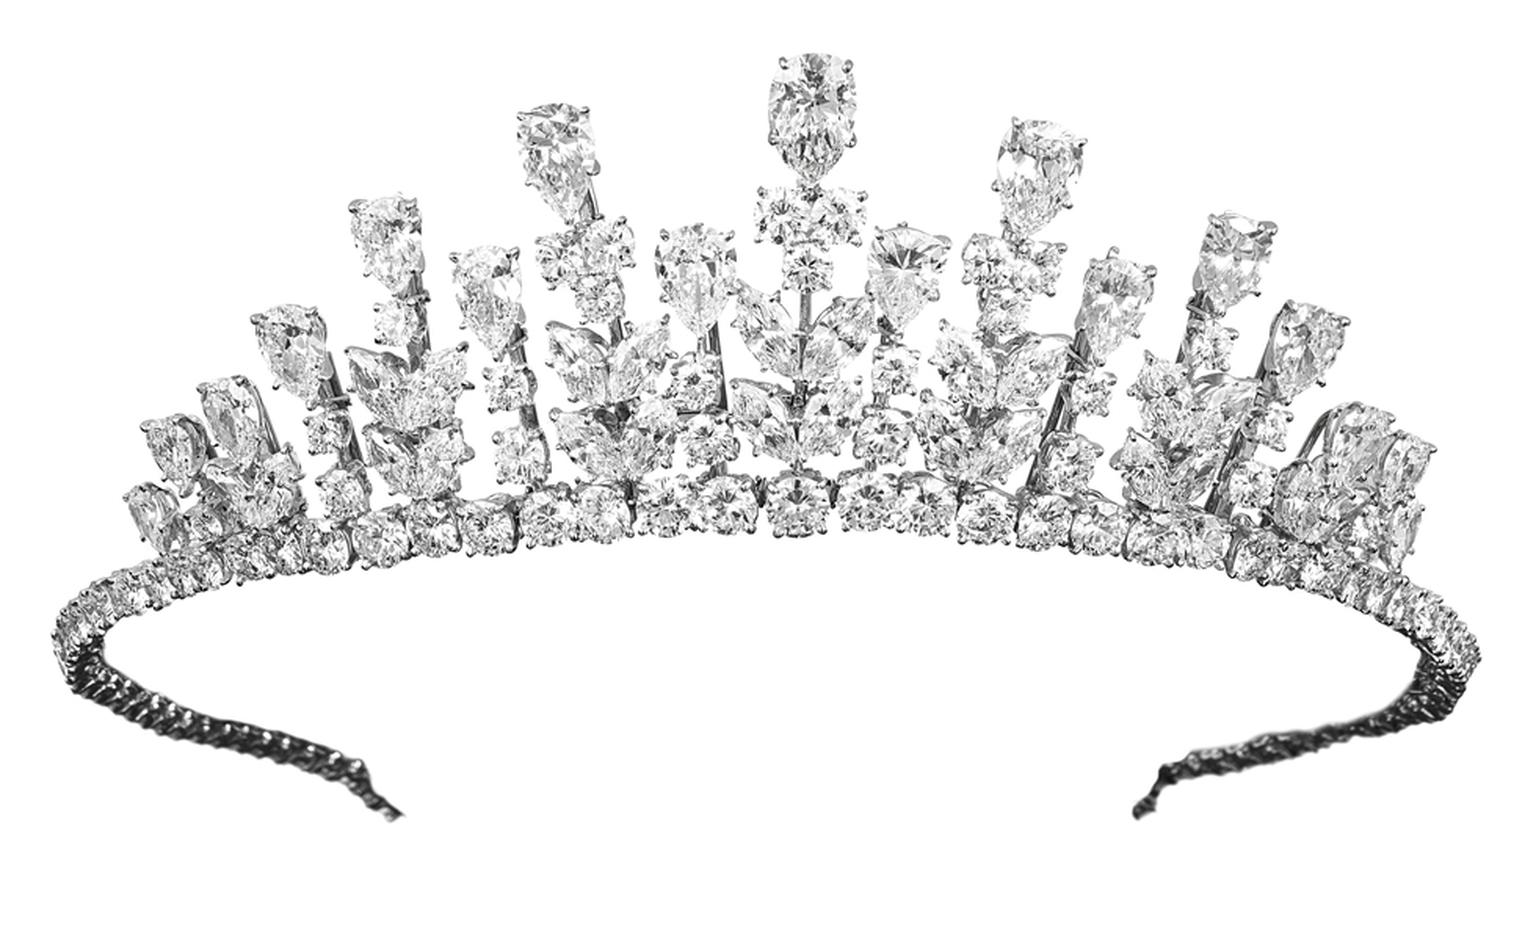 Van Cleef & Arpels Tiara worn by Her Serene Highness Princess Grace of Monaco. Gold, platinum & diamonds, 1976.